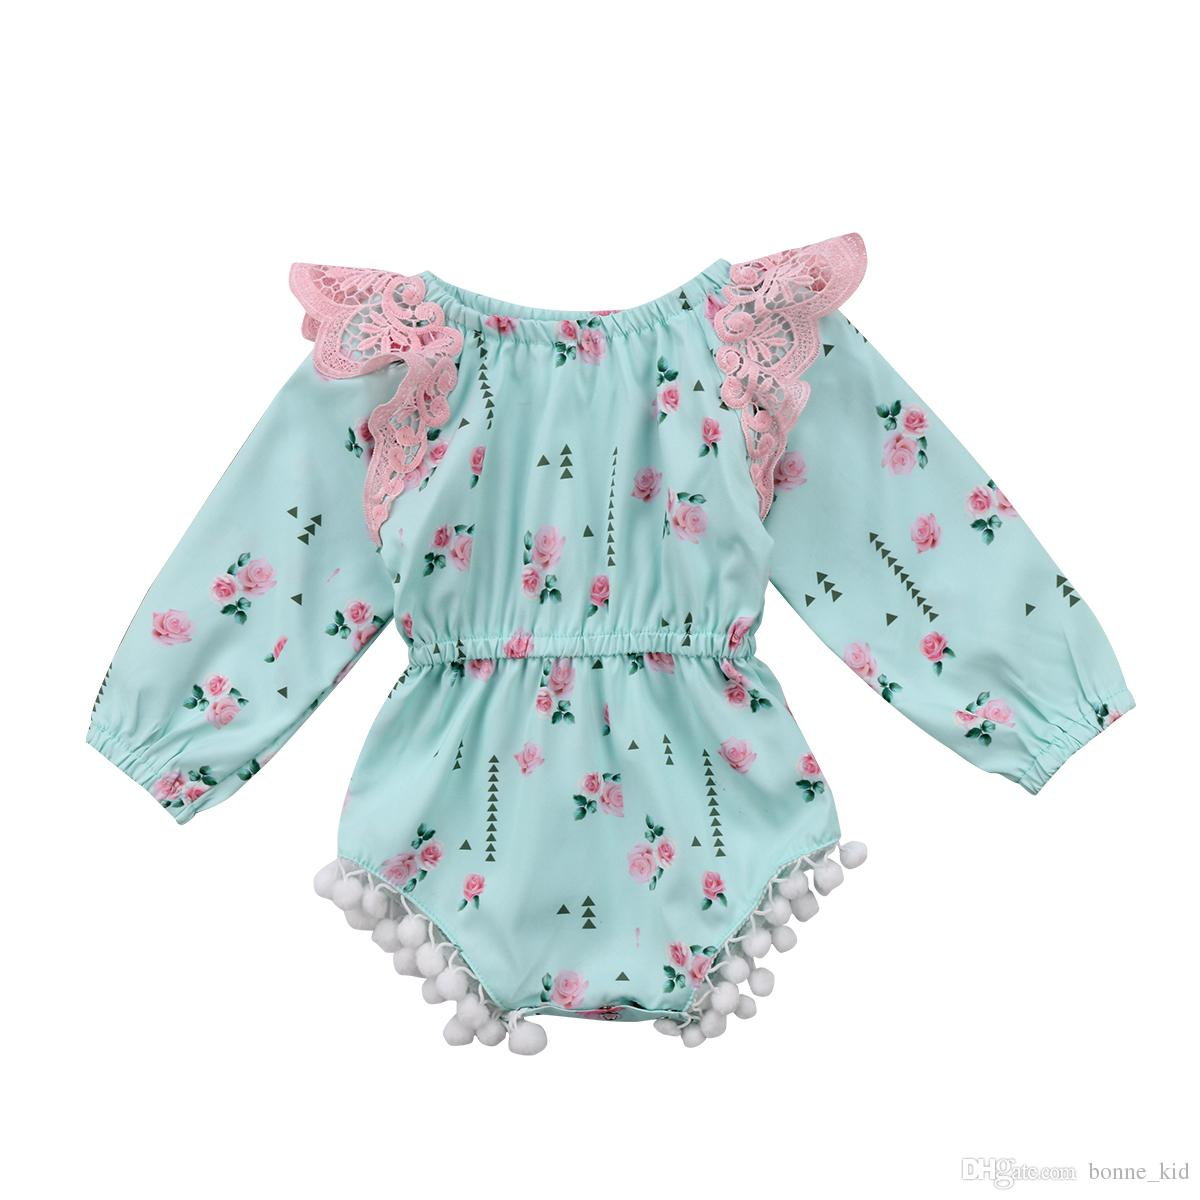 0ffe8c2cba3b 2019 Baby Girl Retro Floral Green Romper Onesies Lace Flower Ruffle Jumpsuit  Outfit Long Sleeves Kid Girls Clothing Roupas Bodysuit Sunsuit 0 24M From  ...